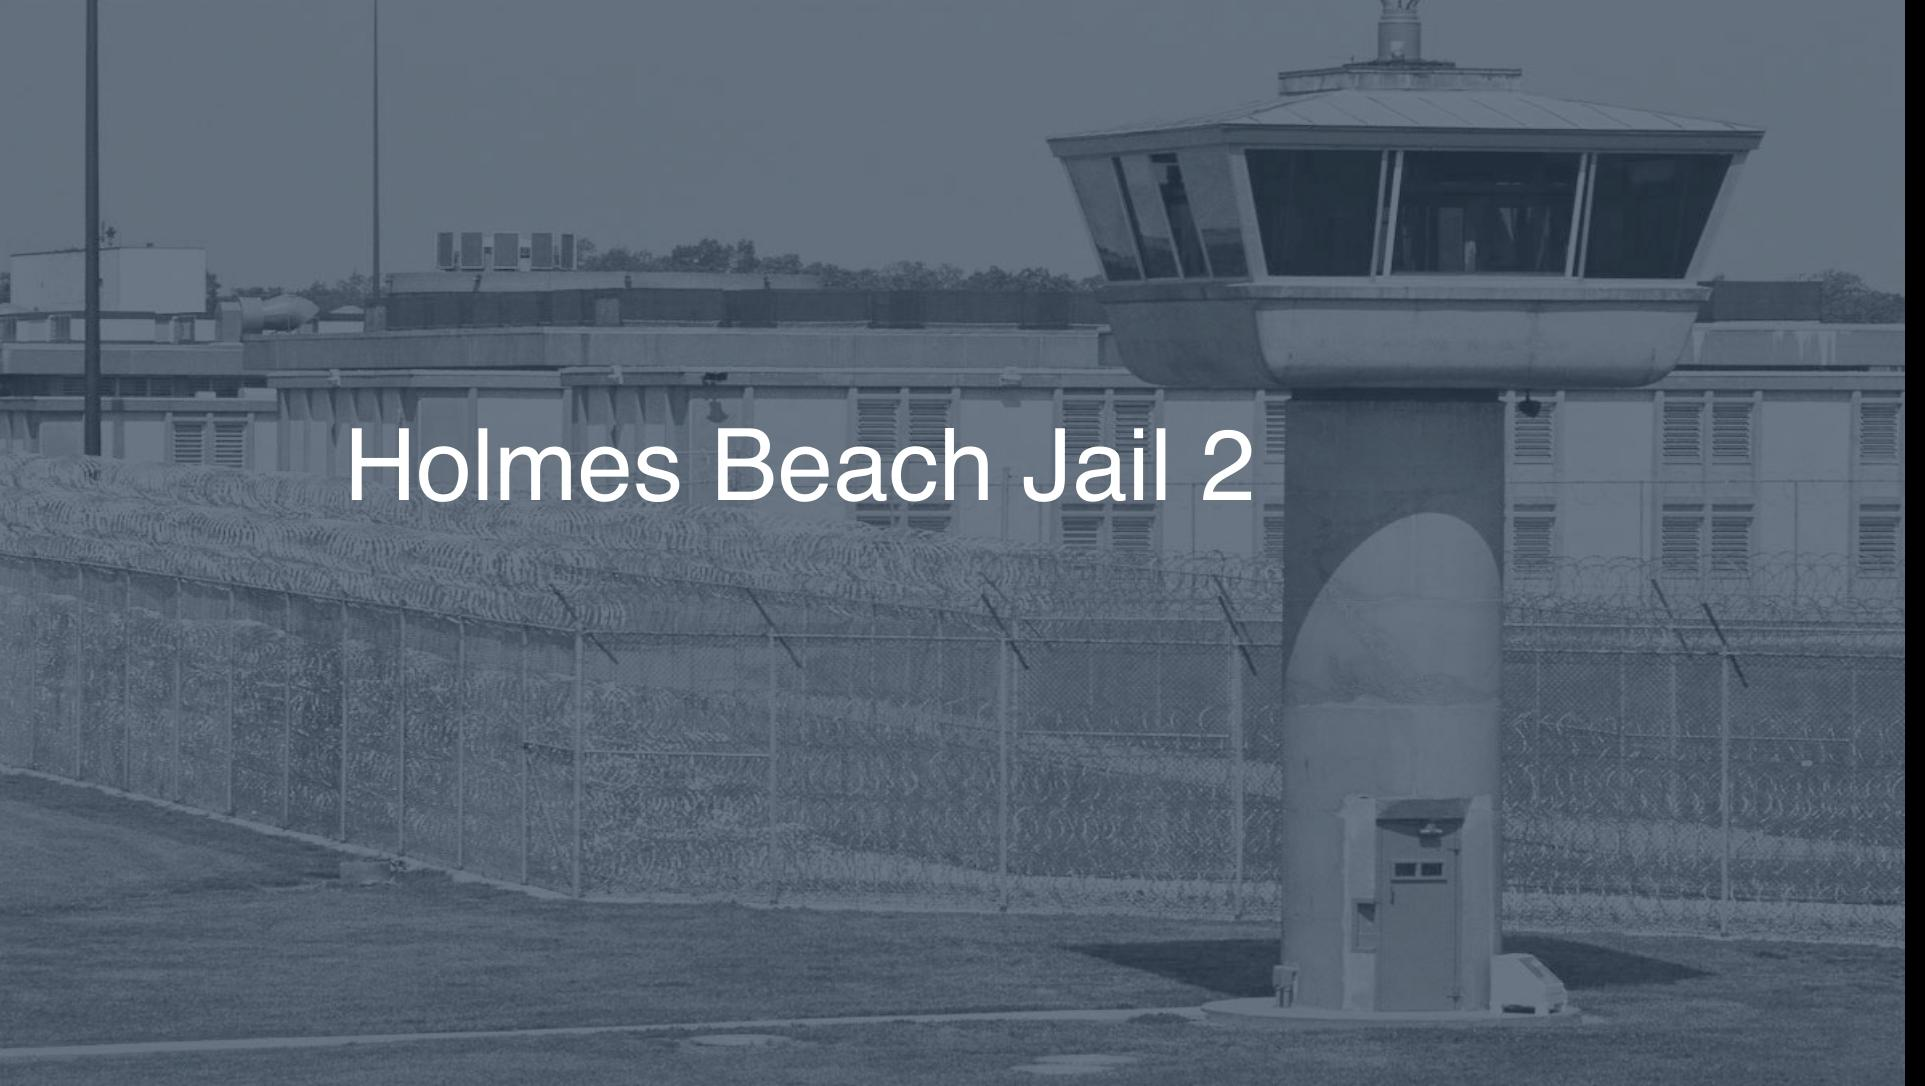 Holmes Beach Jail correctional facility picture